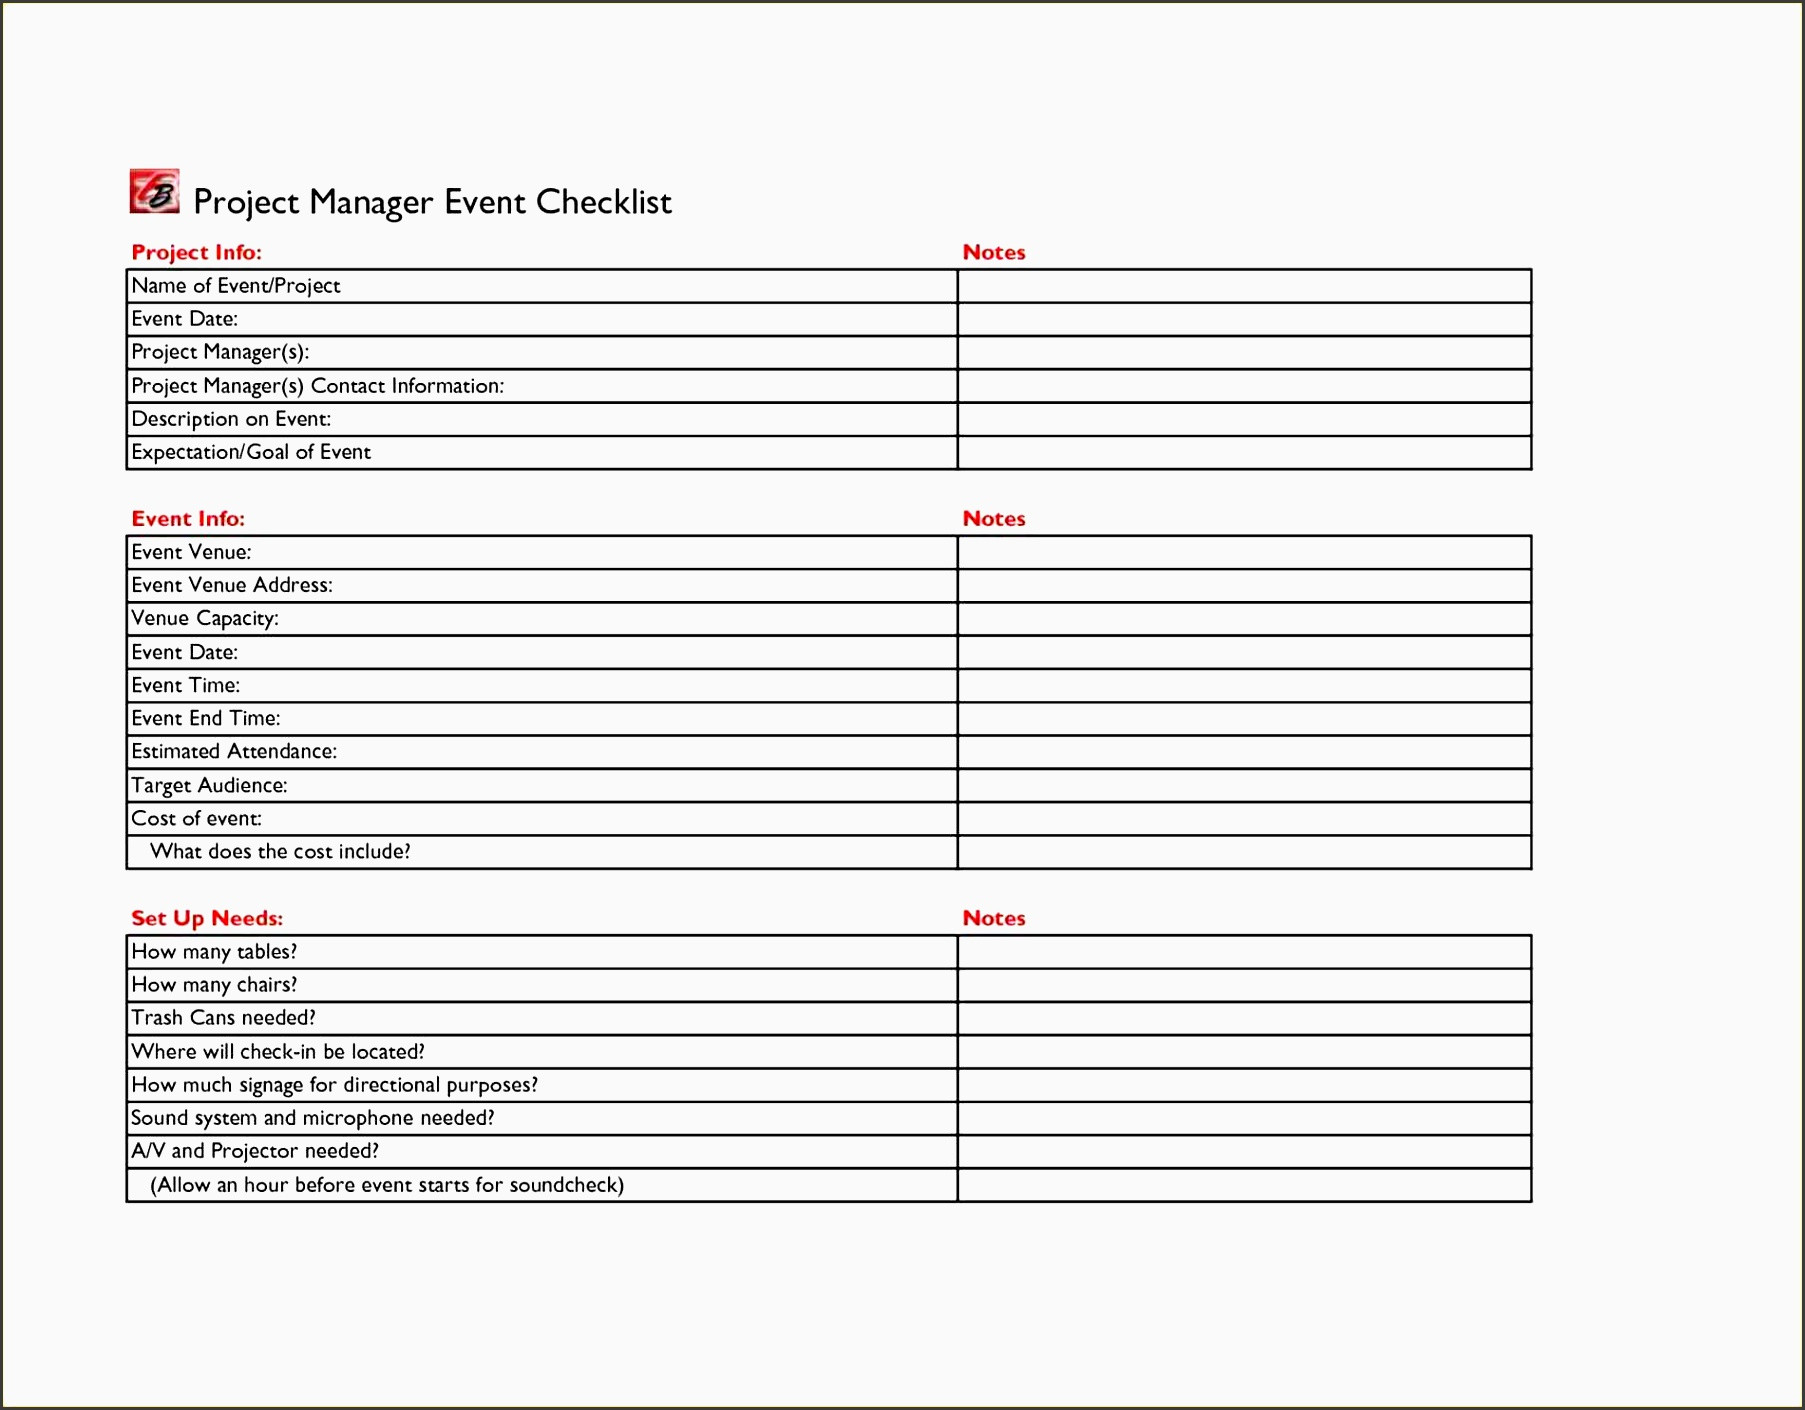 Free Event Planning Checklist Template Excel  Yatay with regard to Event Planning Template Excel